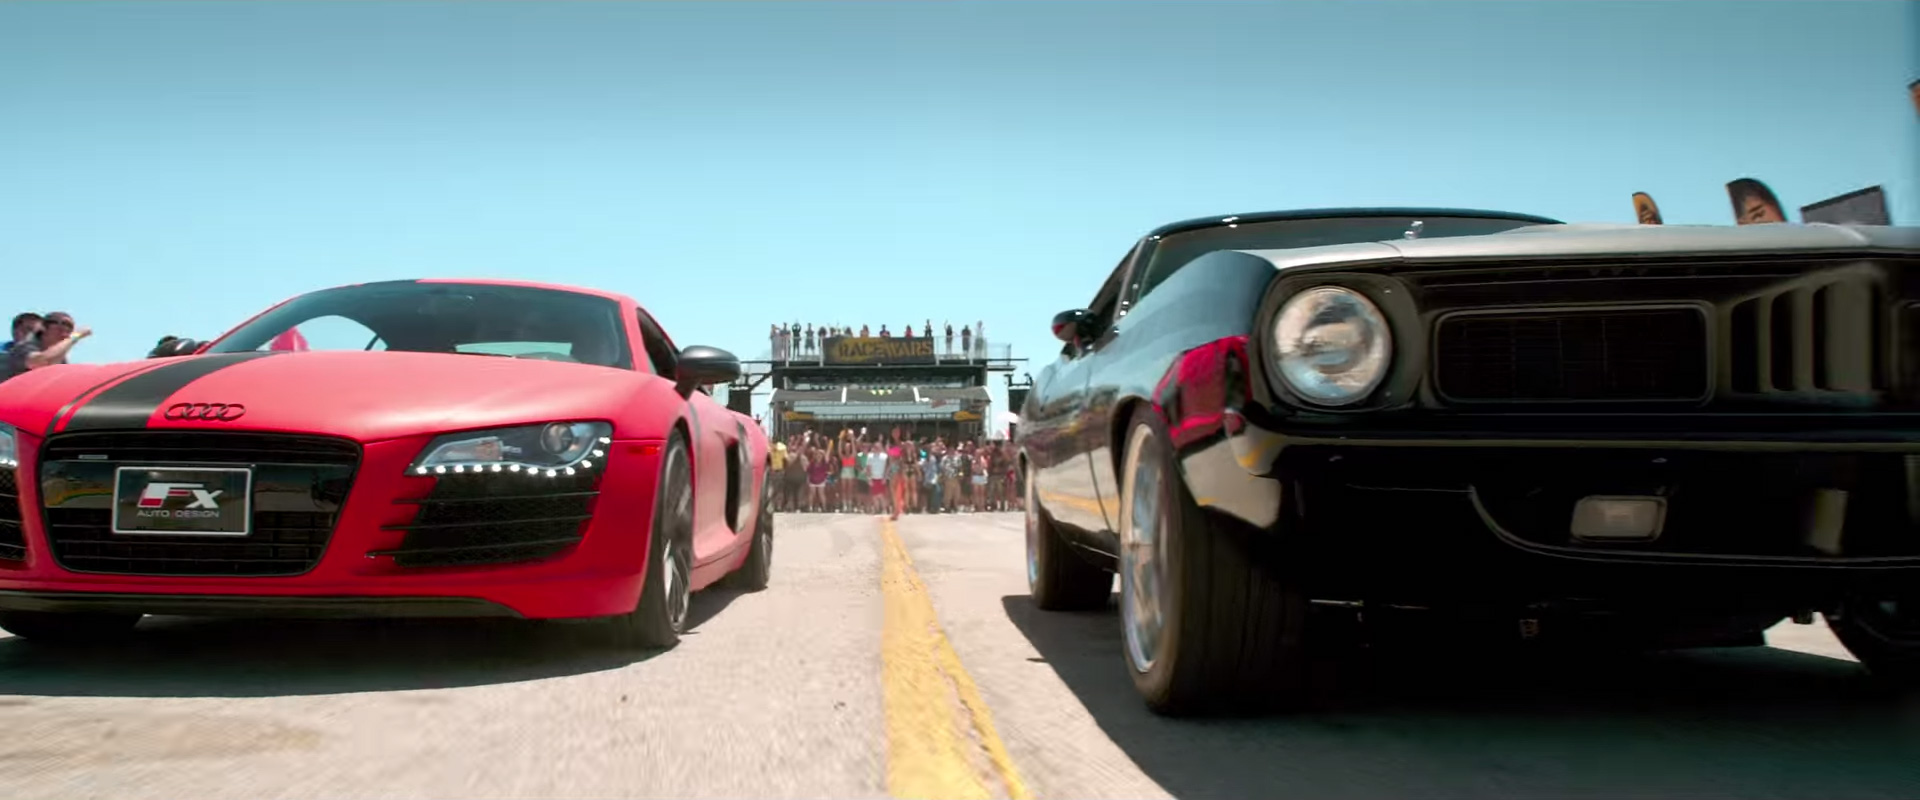 Fast and Furious series could see 'at least three more' films, Universal exec says